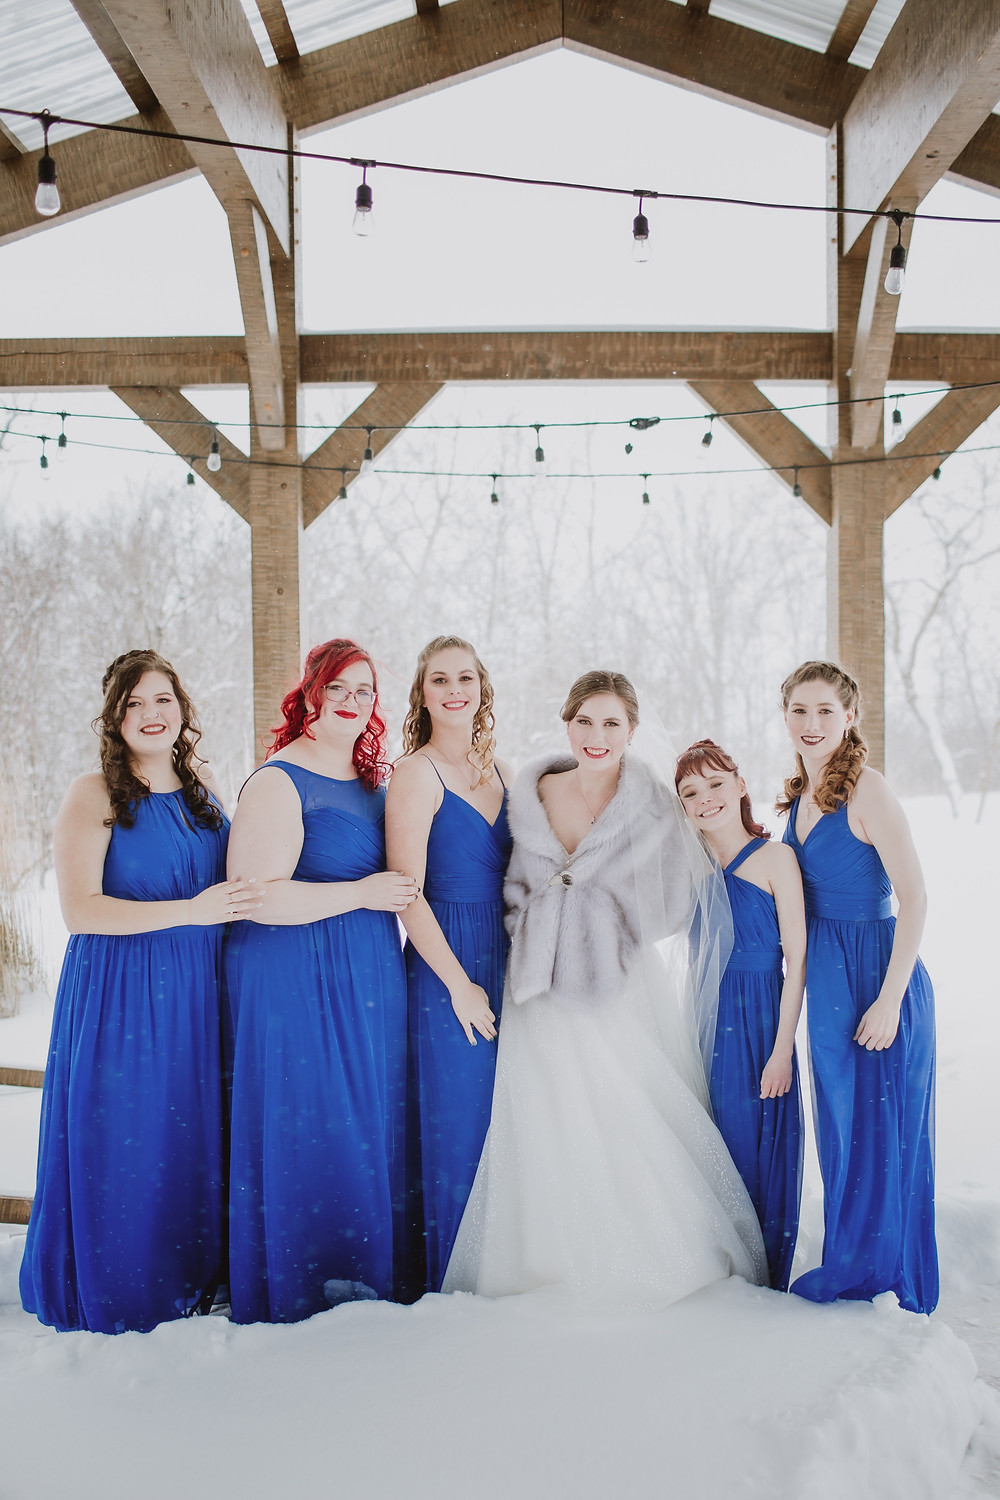 Bridesmaid in royal blue dreses for winter wedding day.